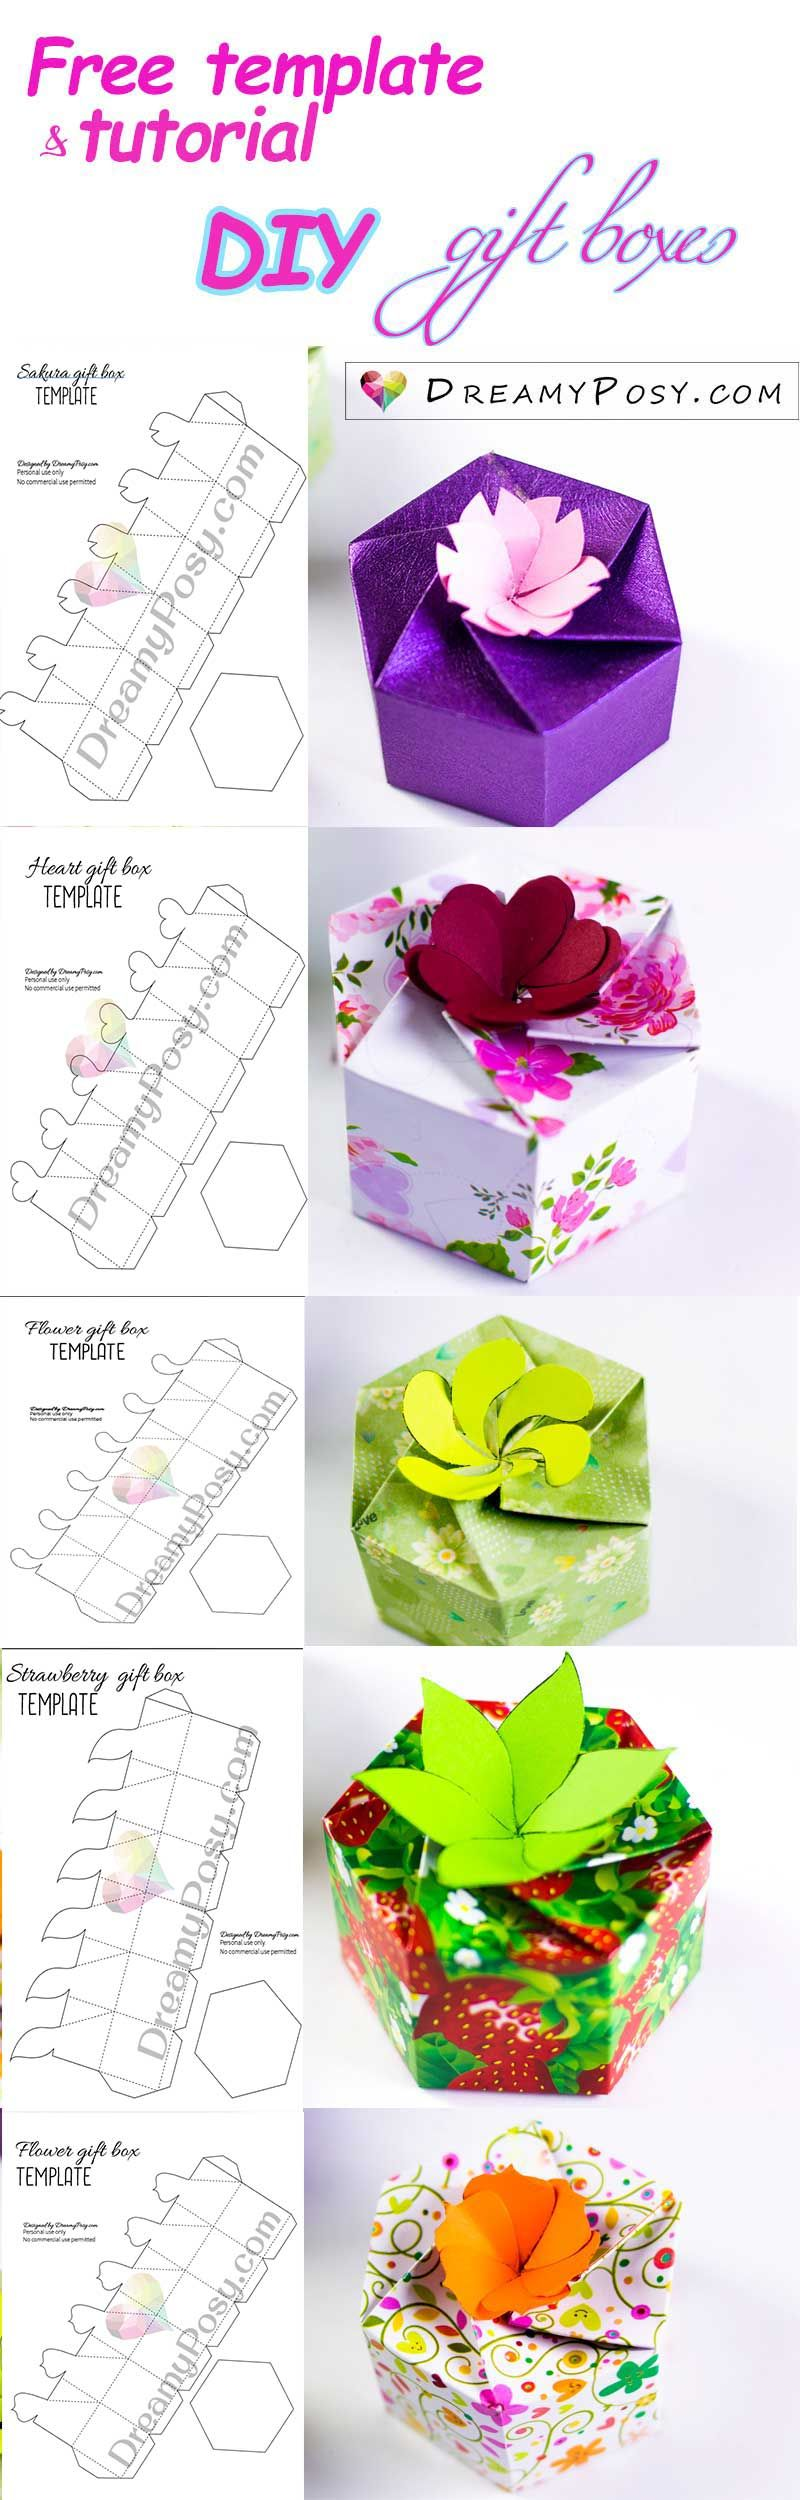 How to make personalized gift boxes, free template Diy